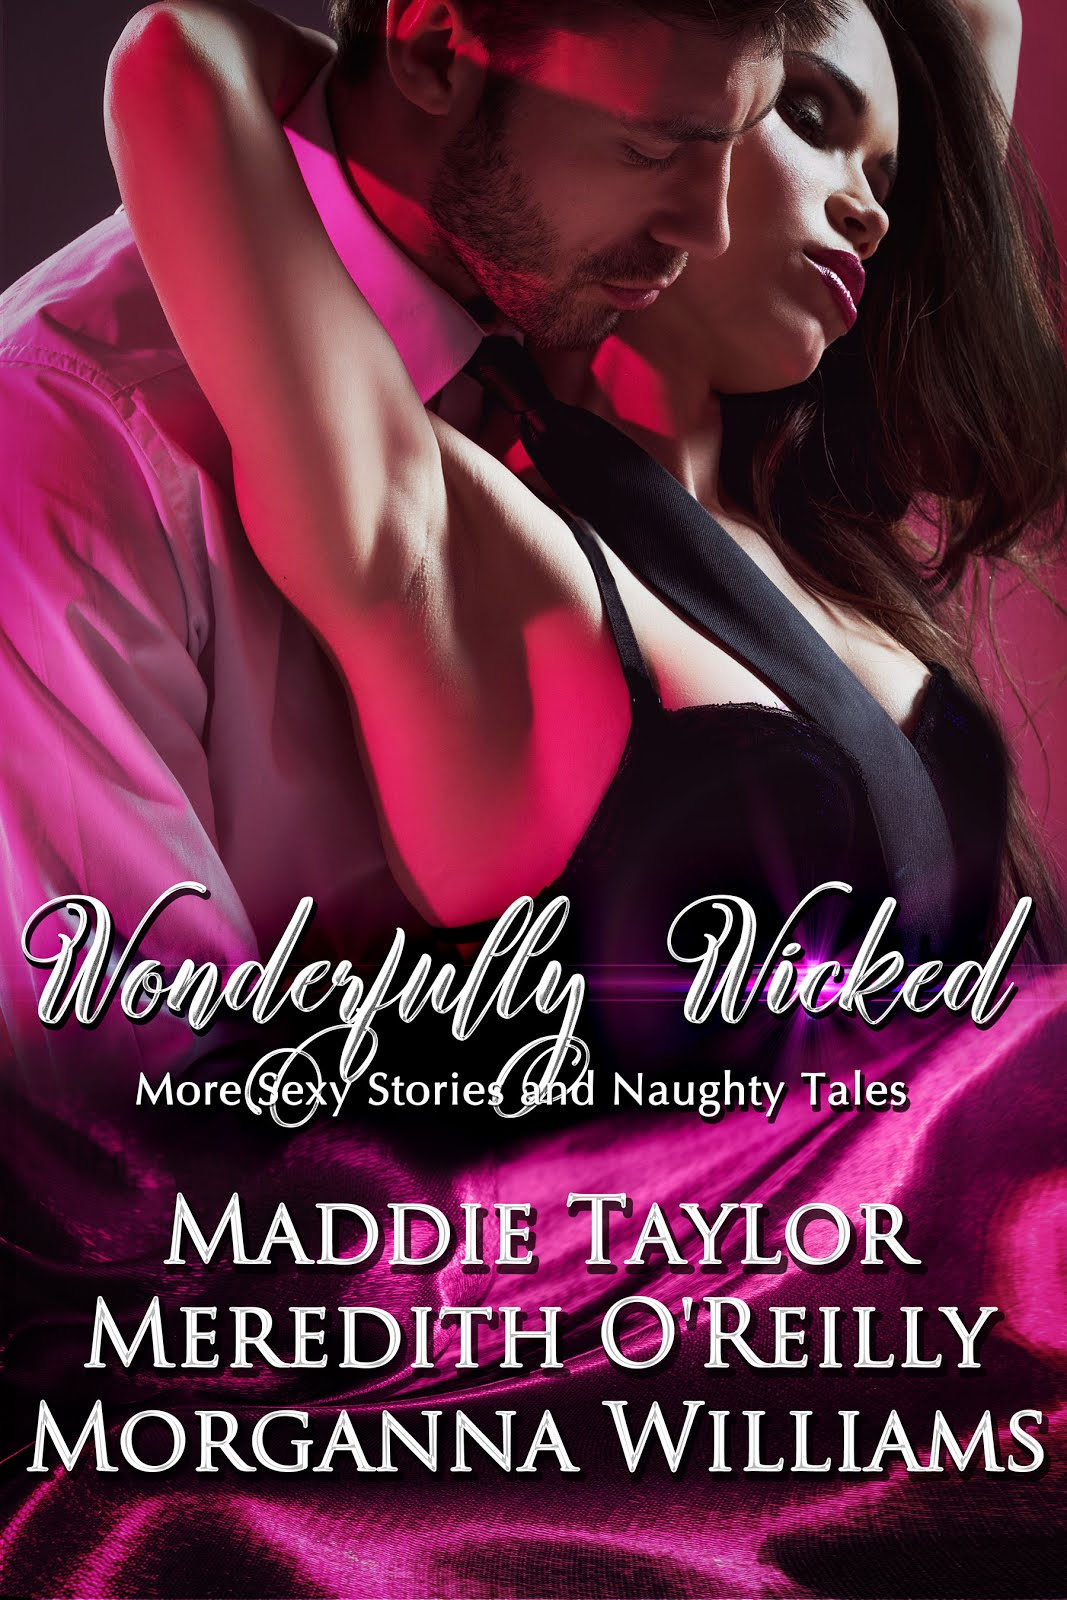 ***NEW RELEASE*** Wonderfully Wicked